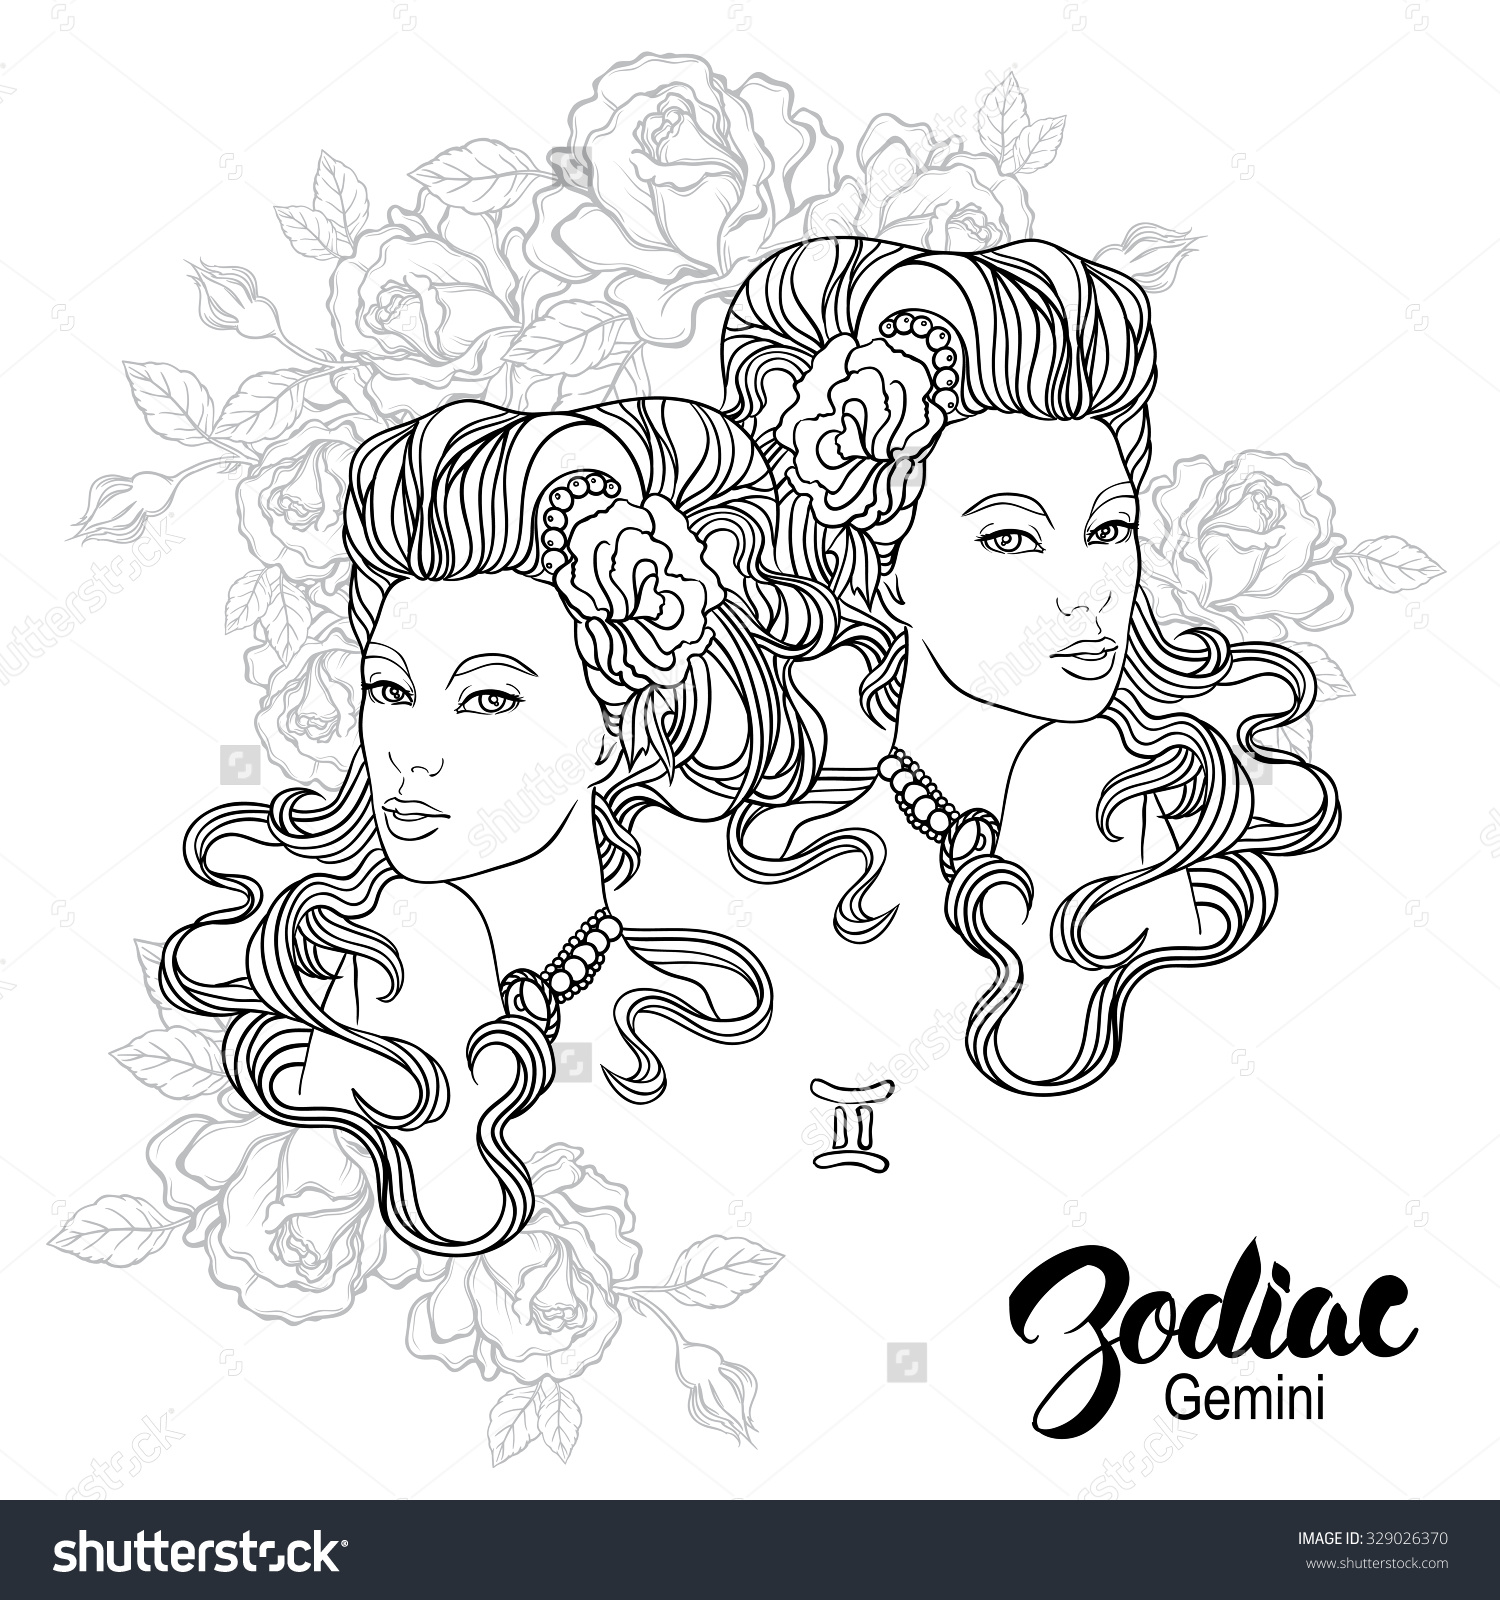 Gemini (Astrology) coloring #4, Download drawings